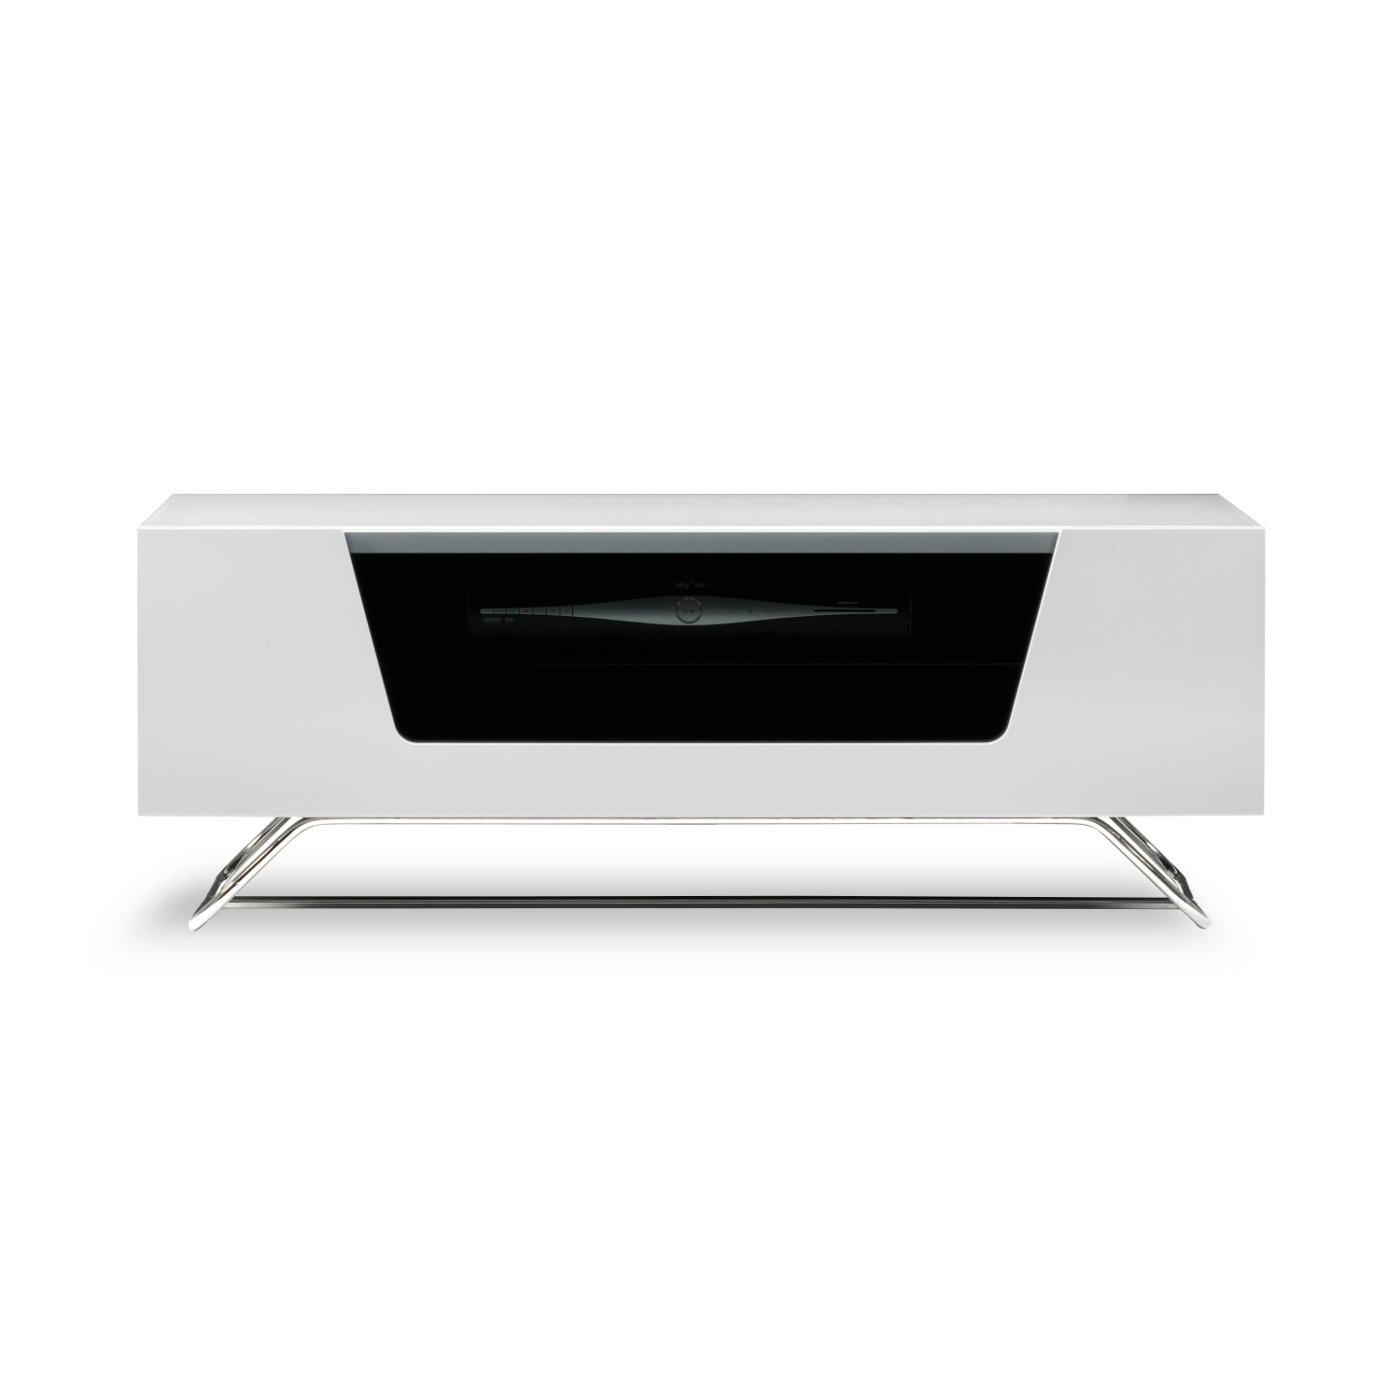 Alphason Chromium 2 1000 White - TV Cabinet Fits Up to: Amazon.co ...